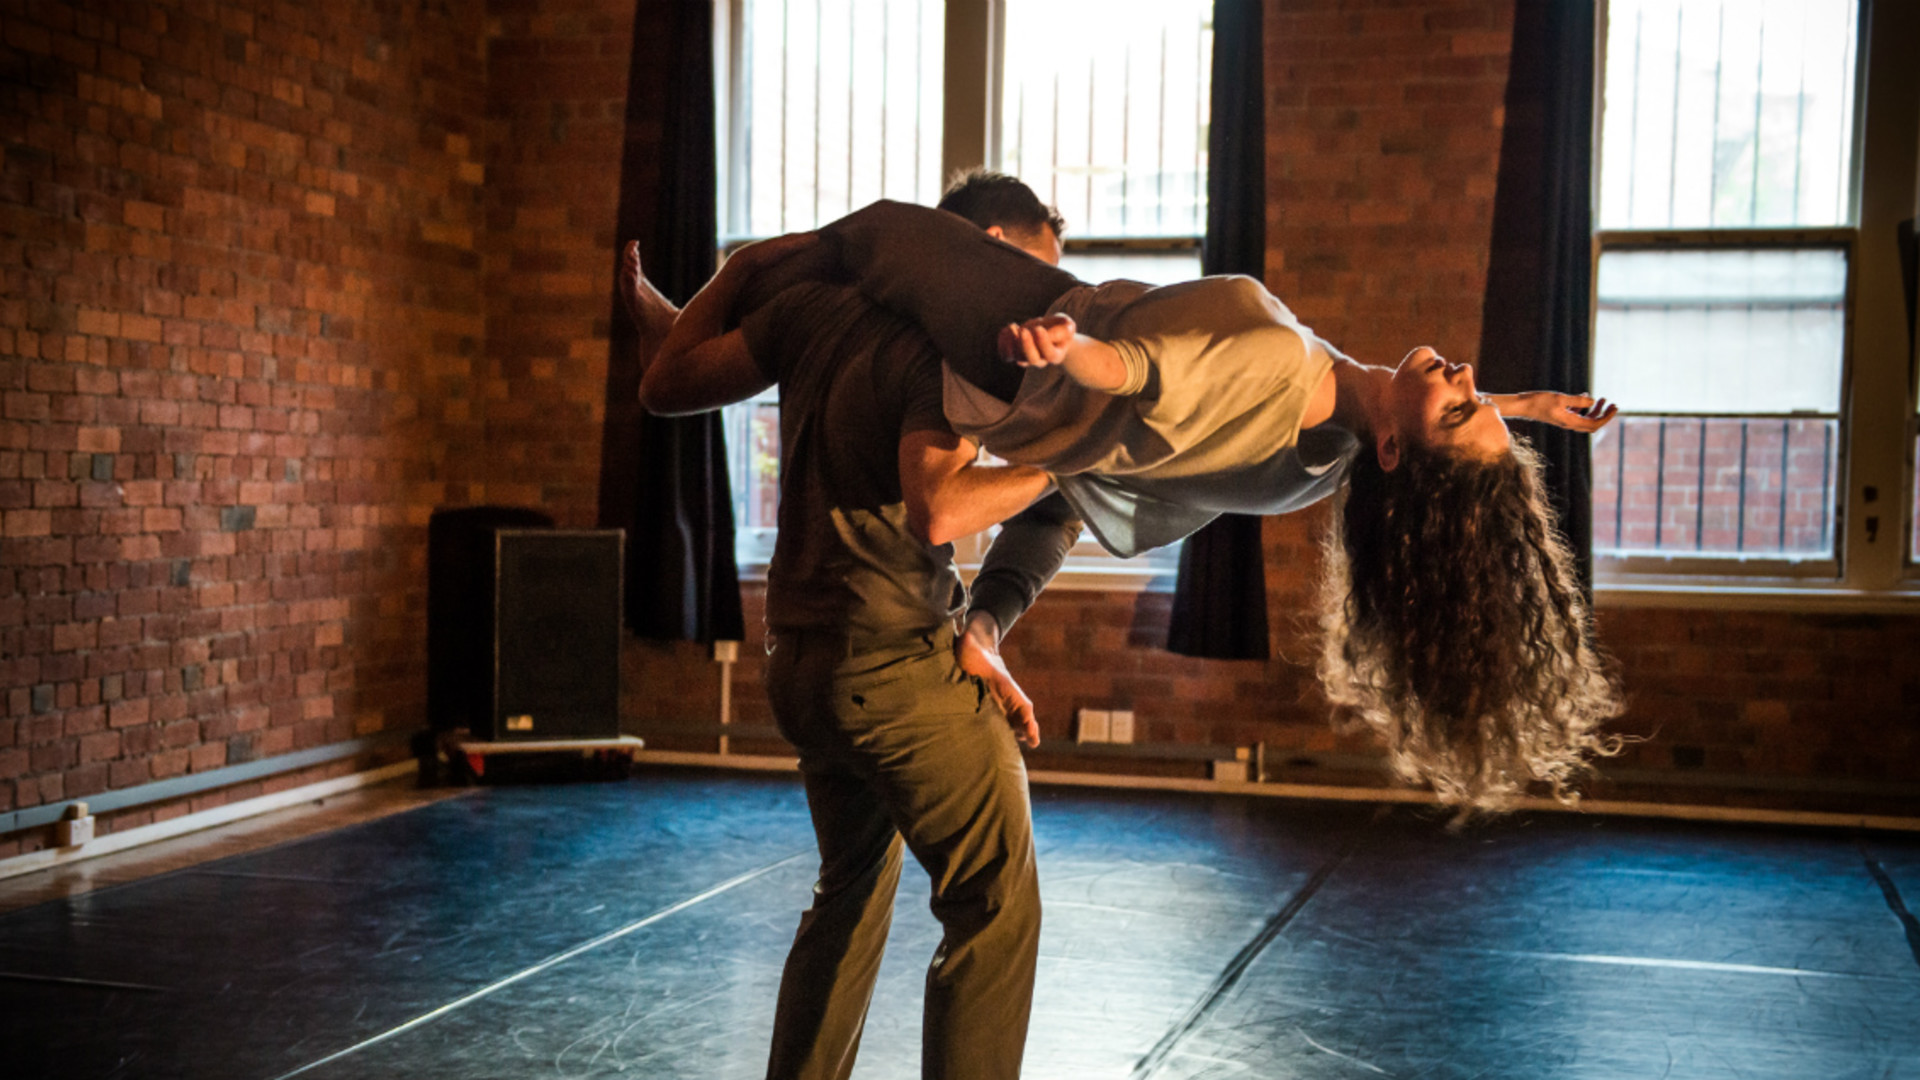 One dancer holds another dancer, with her leg arching over his back and her arms held out wide.